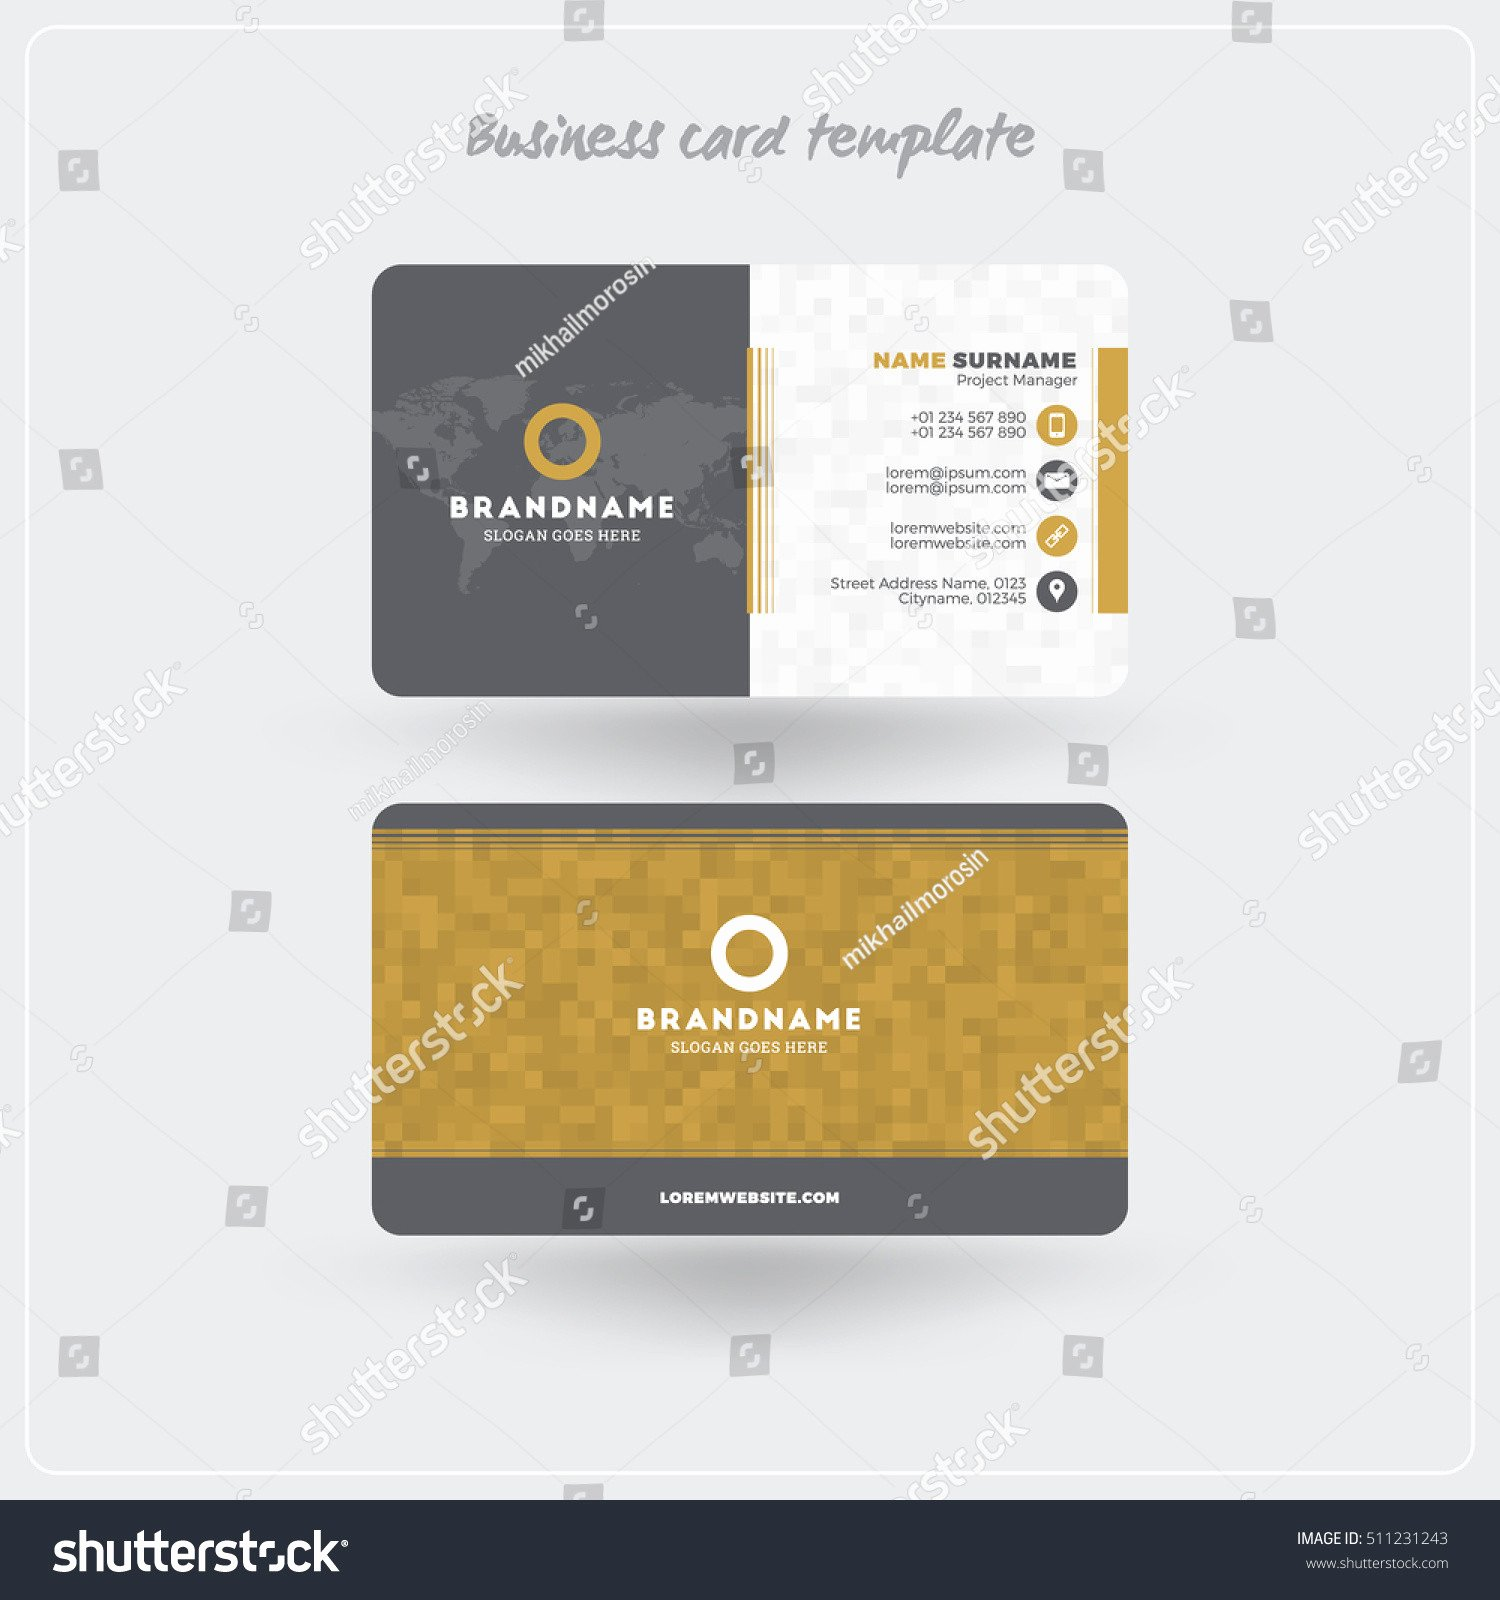 Rounded Business Card Template Best Of Business Card Rounded Corners Template Elegant Rounded